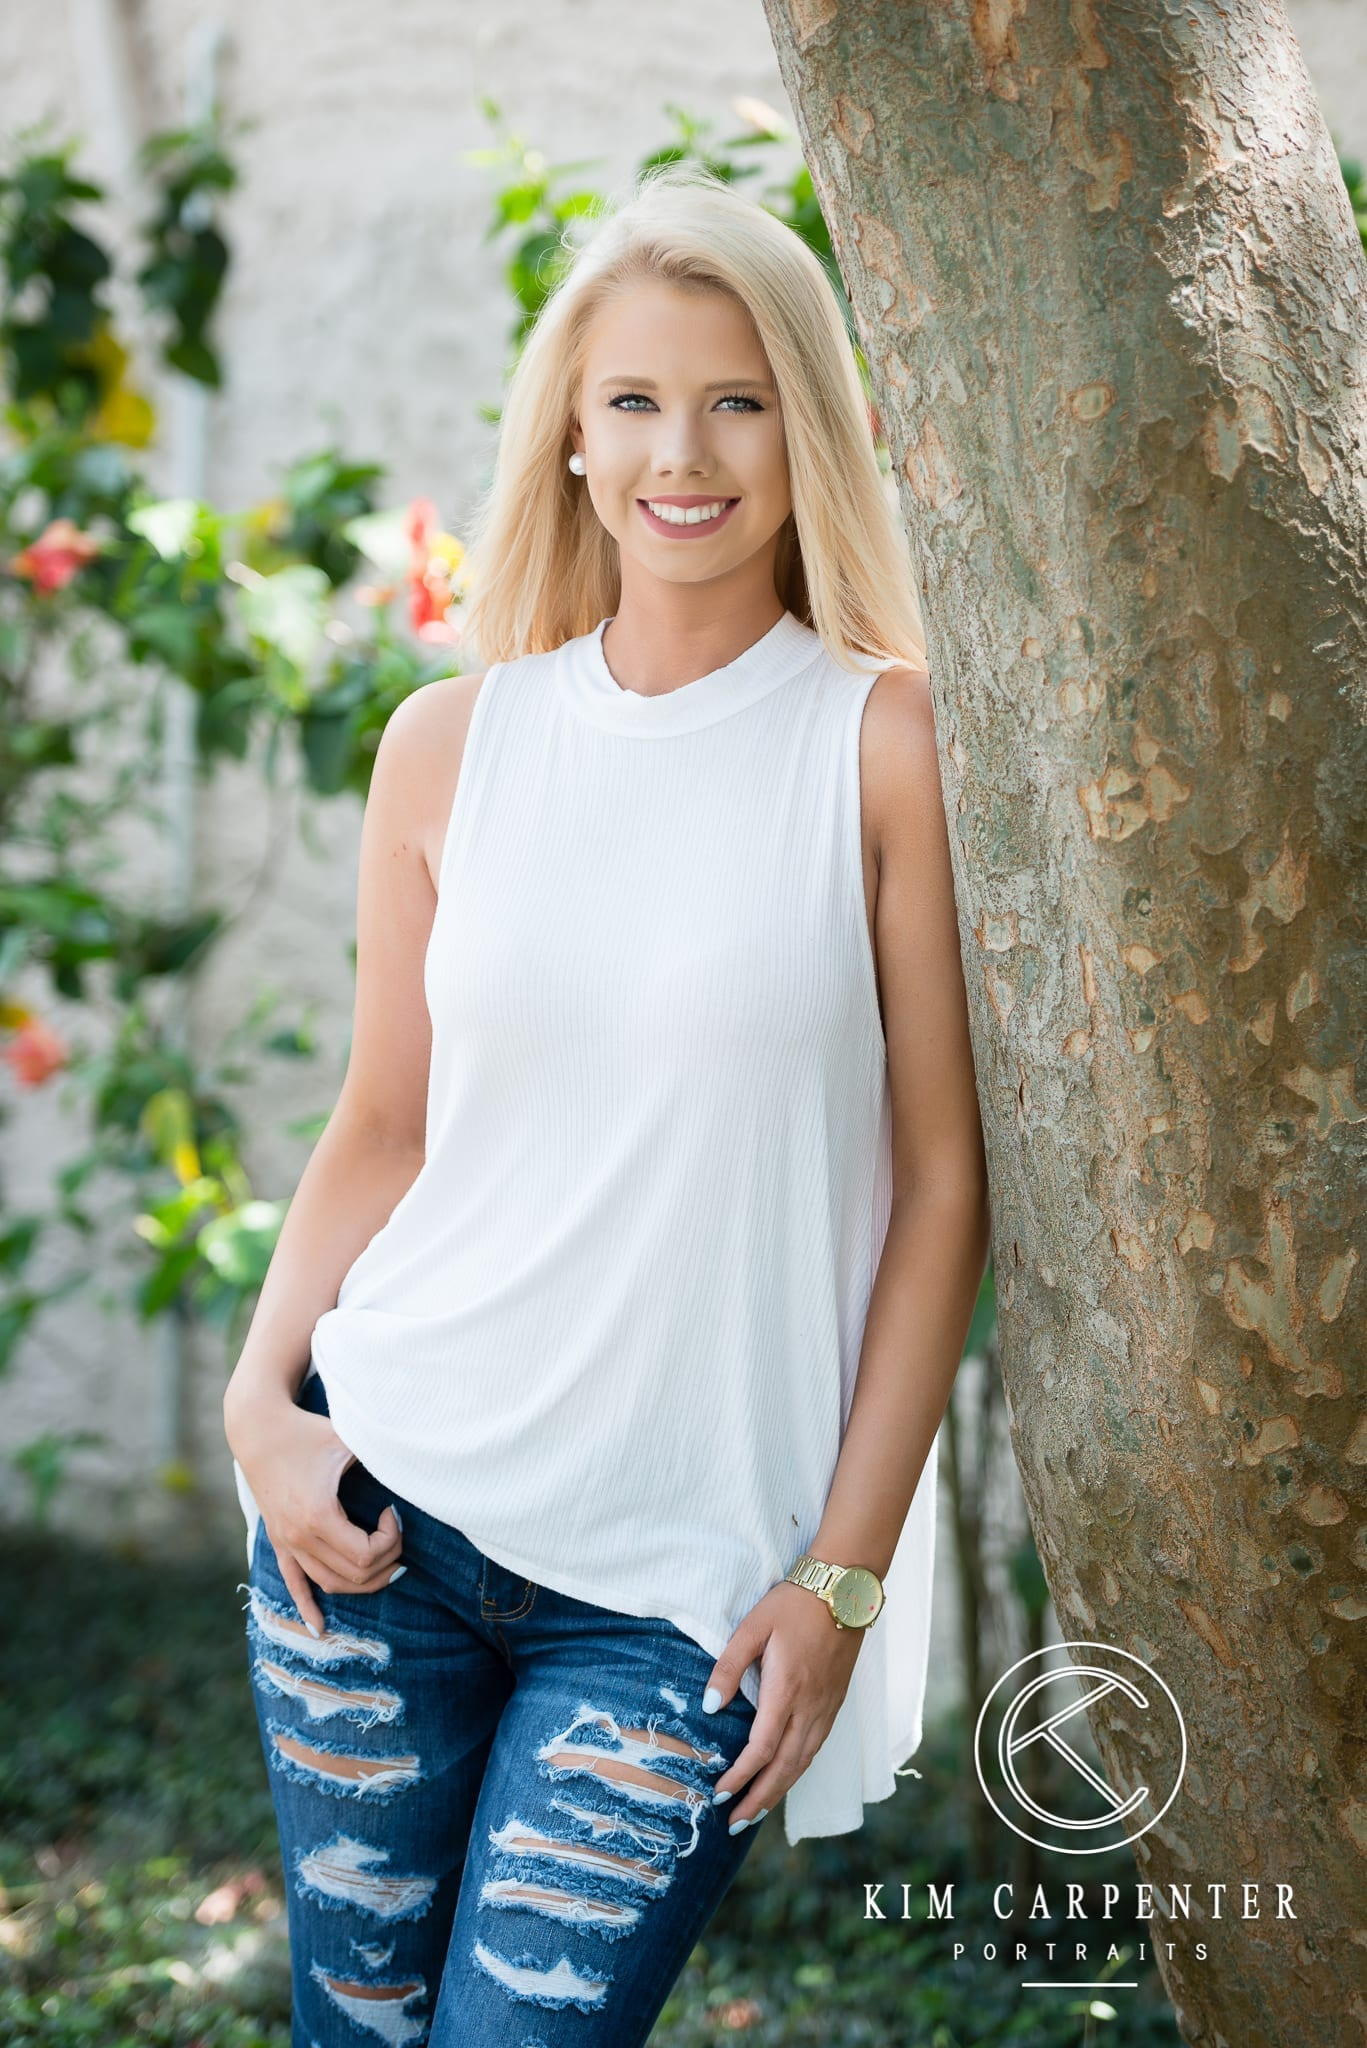 Senior wearing white tank top and ripped jeans.